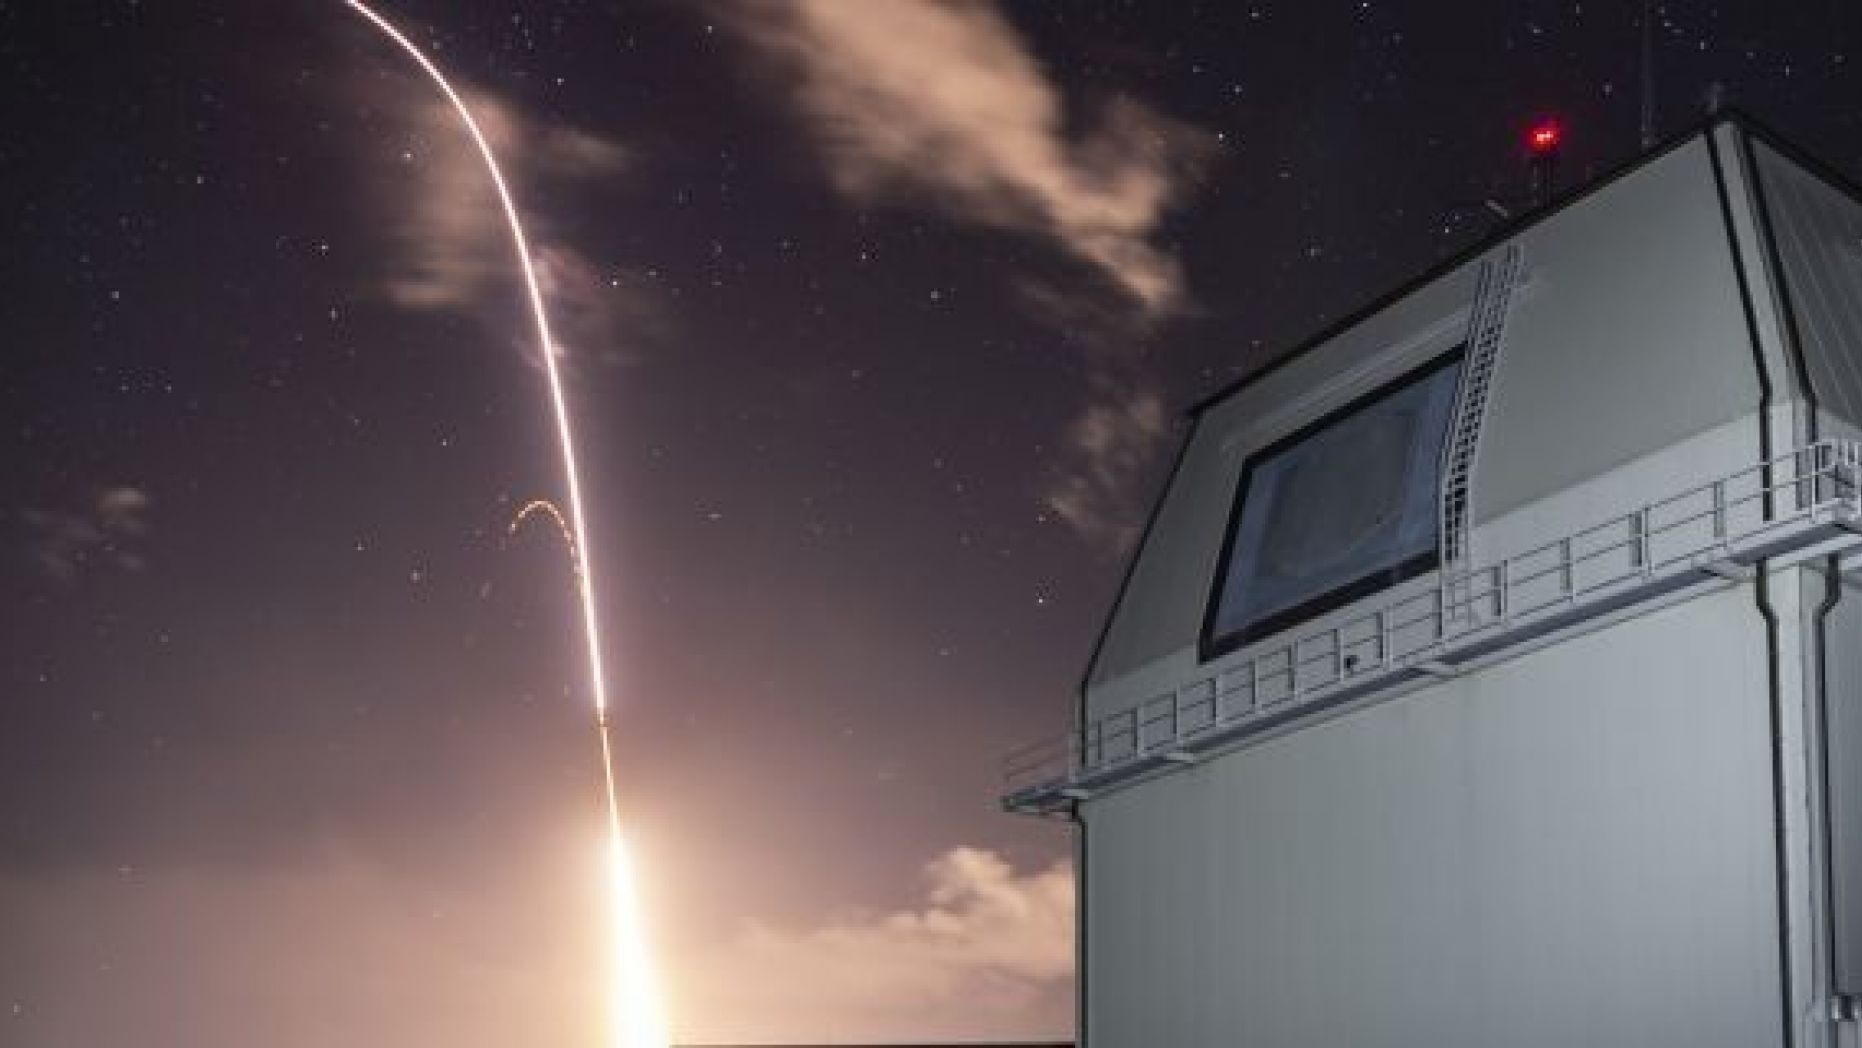 File photo - The Missile Defense Agency (MDA) and U.S. Navy sailors manning the Aegis Ashore Missile Defense Test Complex (AAMDTC) at the Pacific Missile Range Facility (PMRF) at Kauai, Hawaii, successfully conducted Flight Test Integrated-03 (FTI-03) in December 2018.